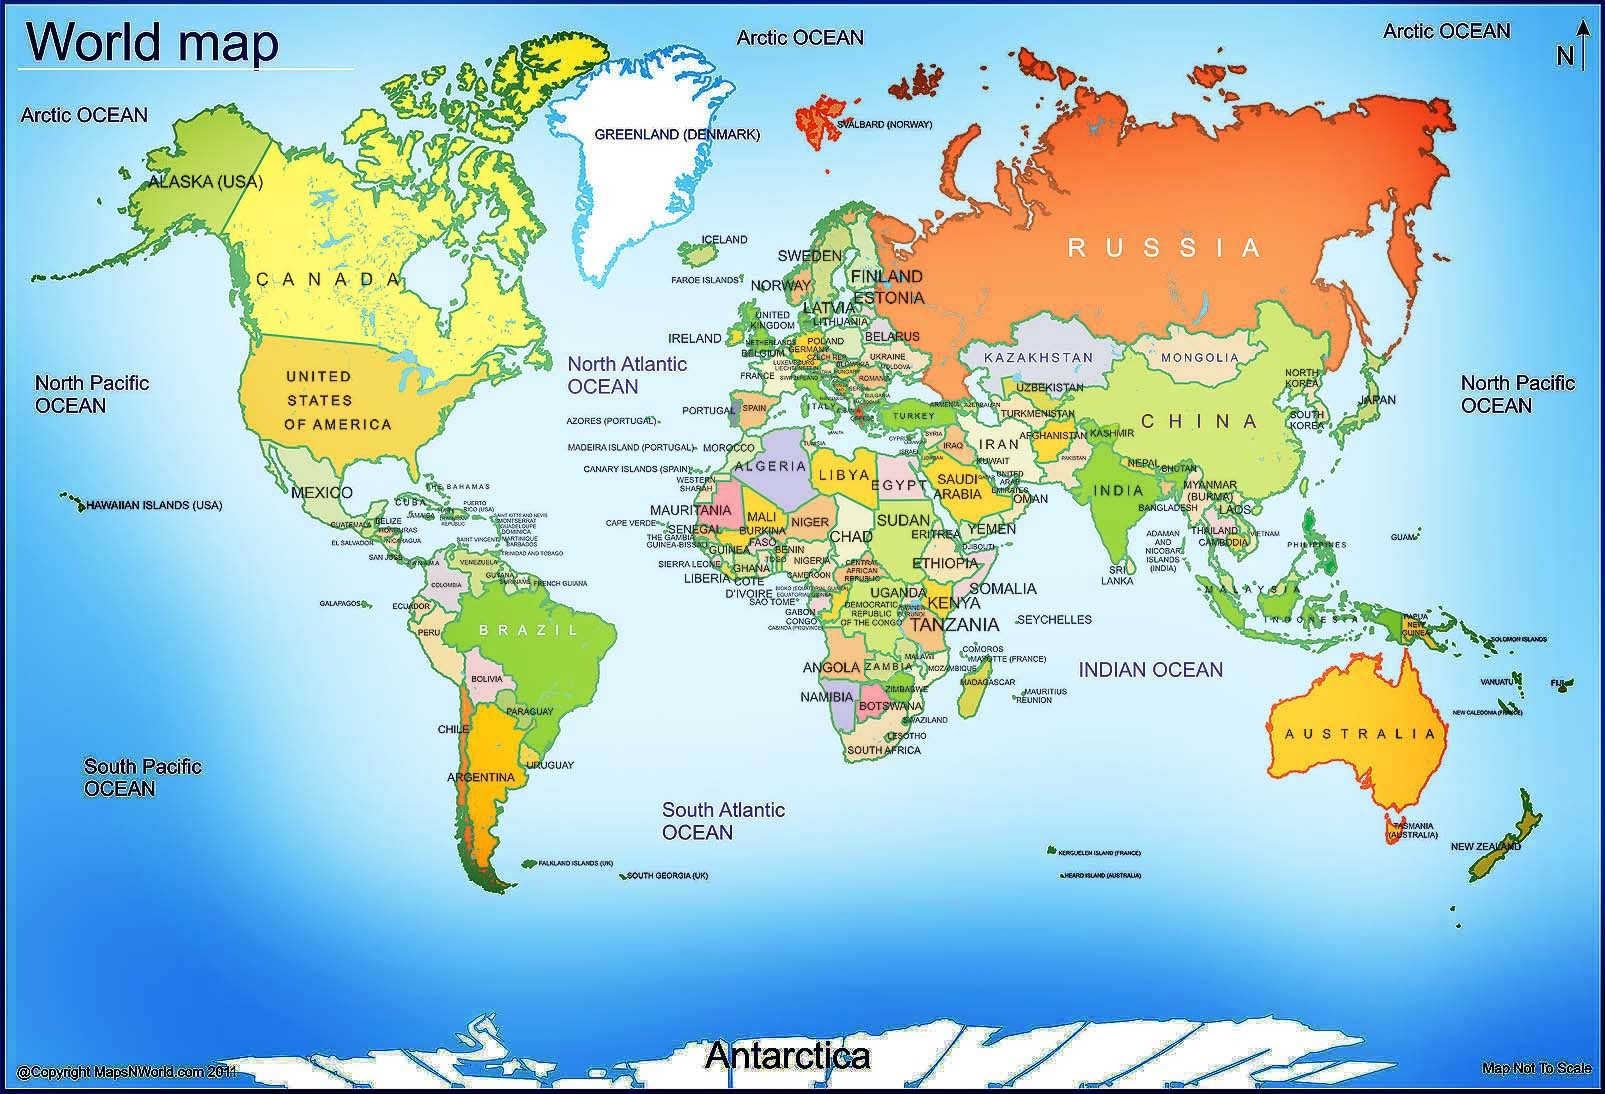 10 latest full hd world map full hd 1080p for pc desktop 2018 free title world map free large images dimension 1605 x 1094 file type jpgjpeg 10 latest full hd gumiabroncs Image collections